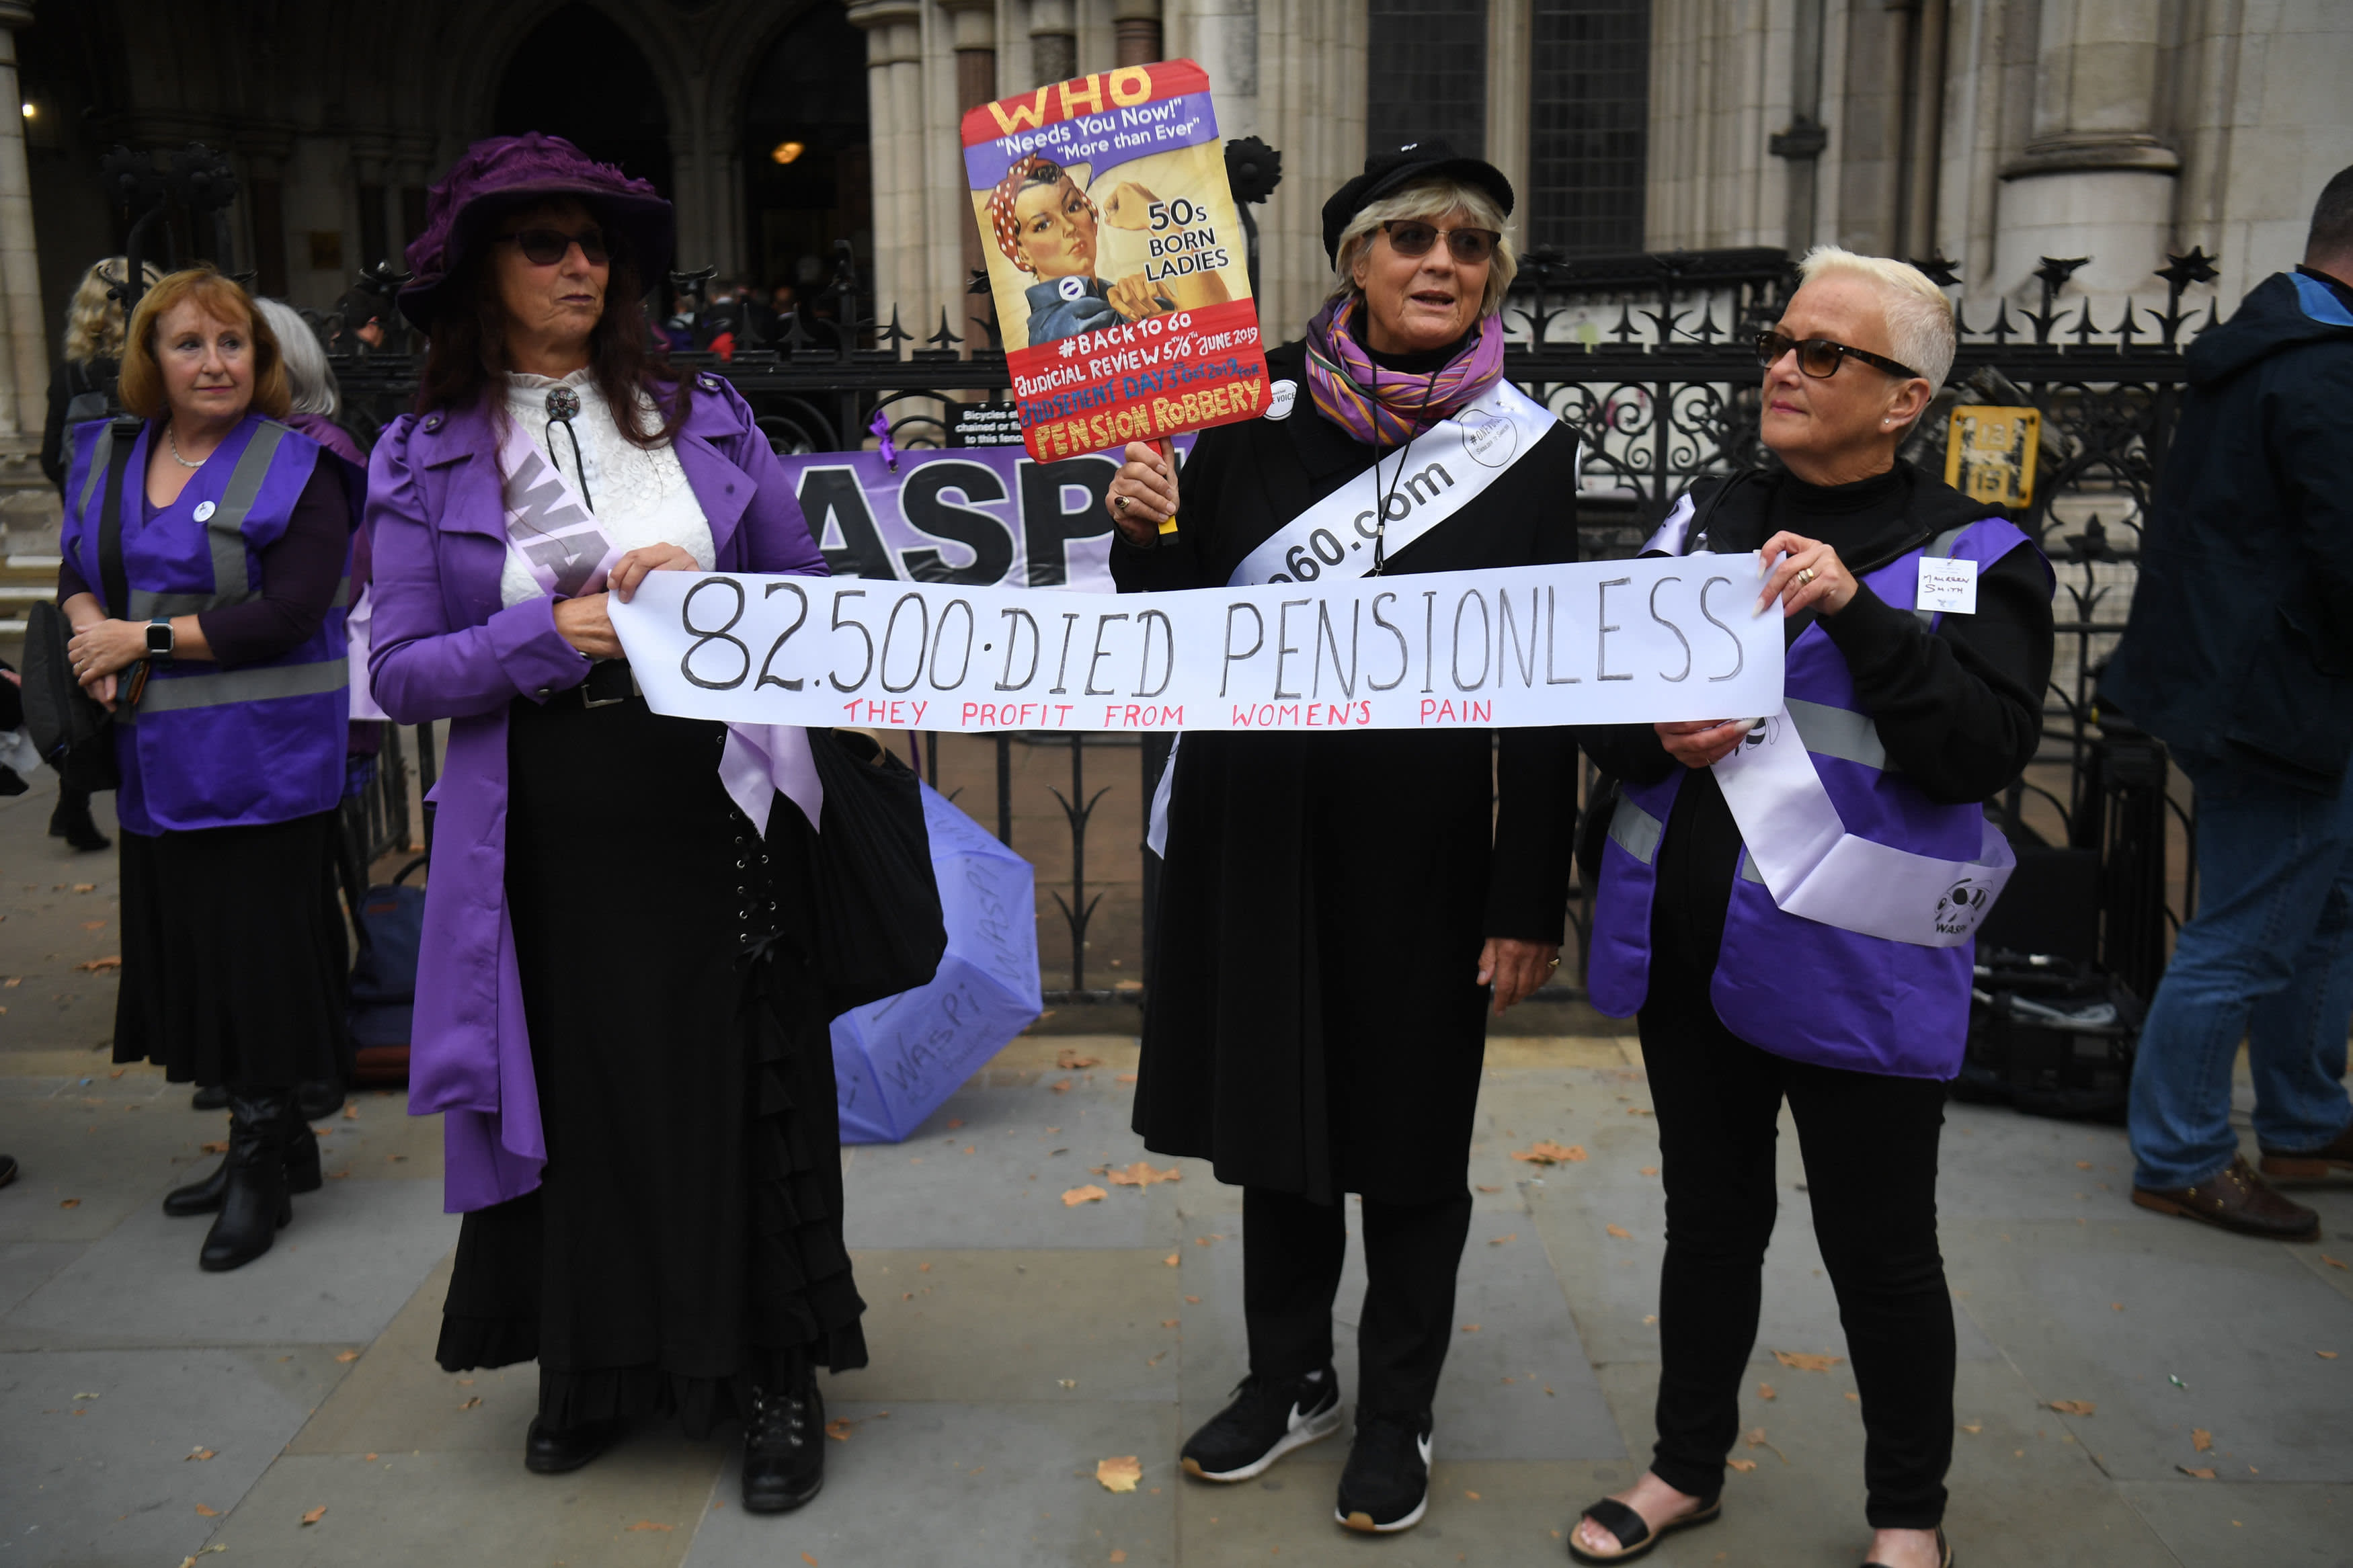 Waspi women 'frustrated' at ombudsman delays